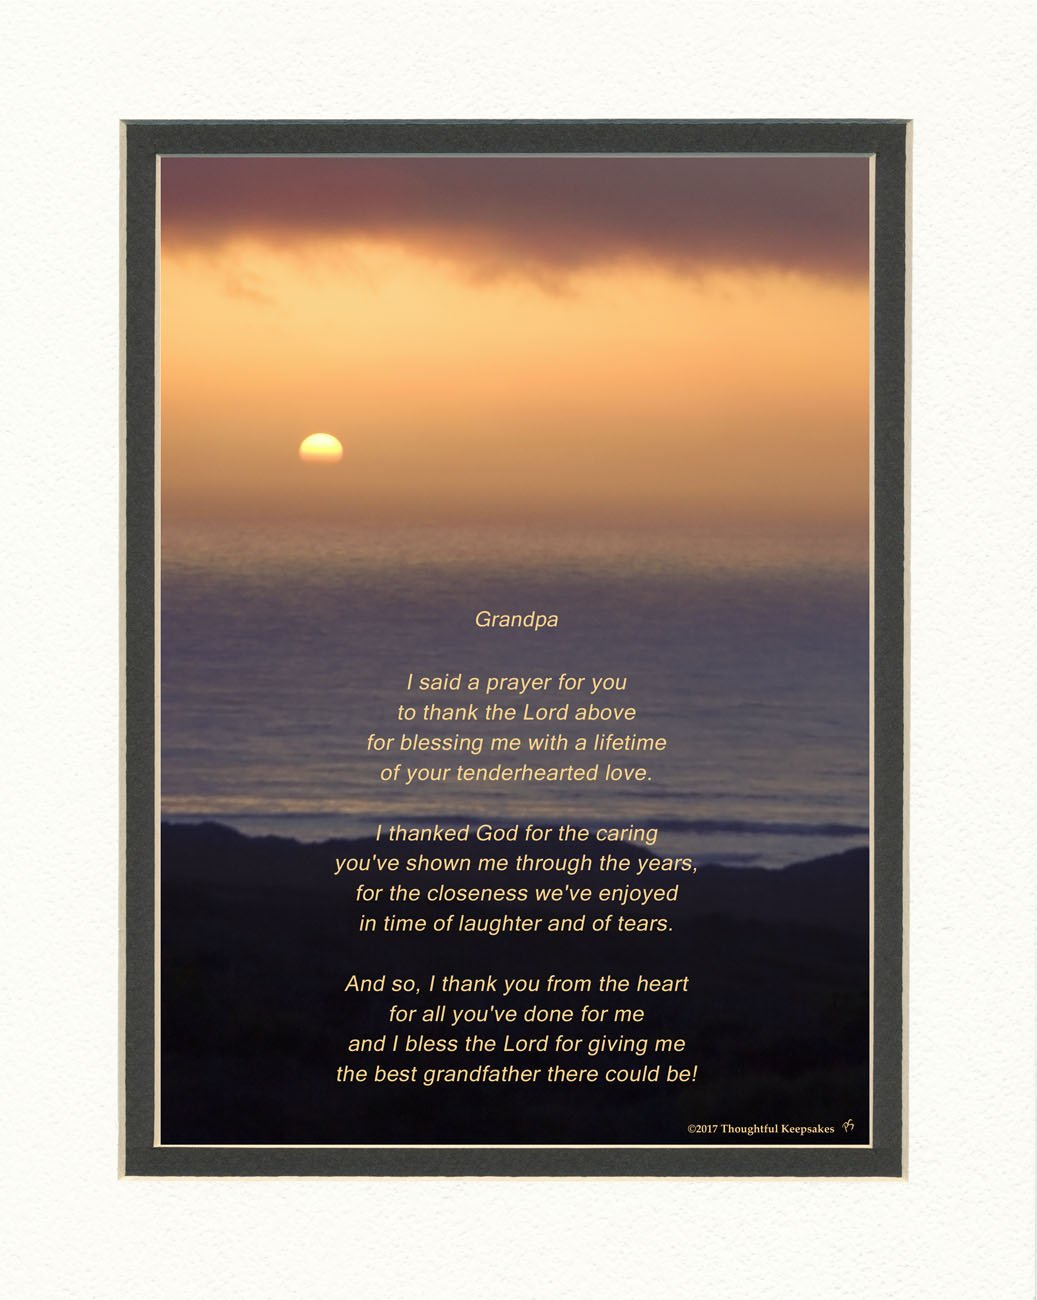 Grandpa Gift with Thank You Prayer for Best Grandfather Poem. Ocean Sunset Photo, 8x10 Double Matted. Special Grandparents Day, Birthday, for Granddad